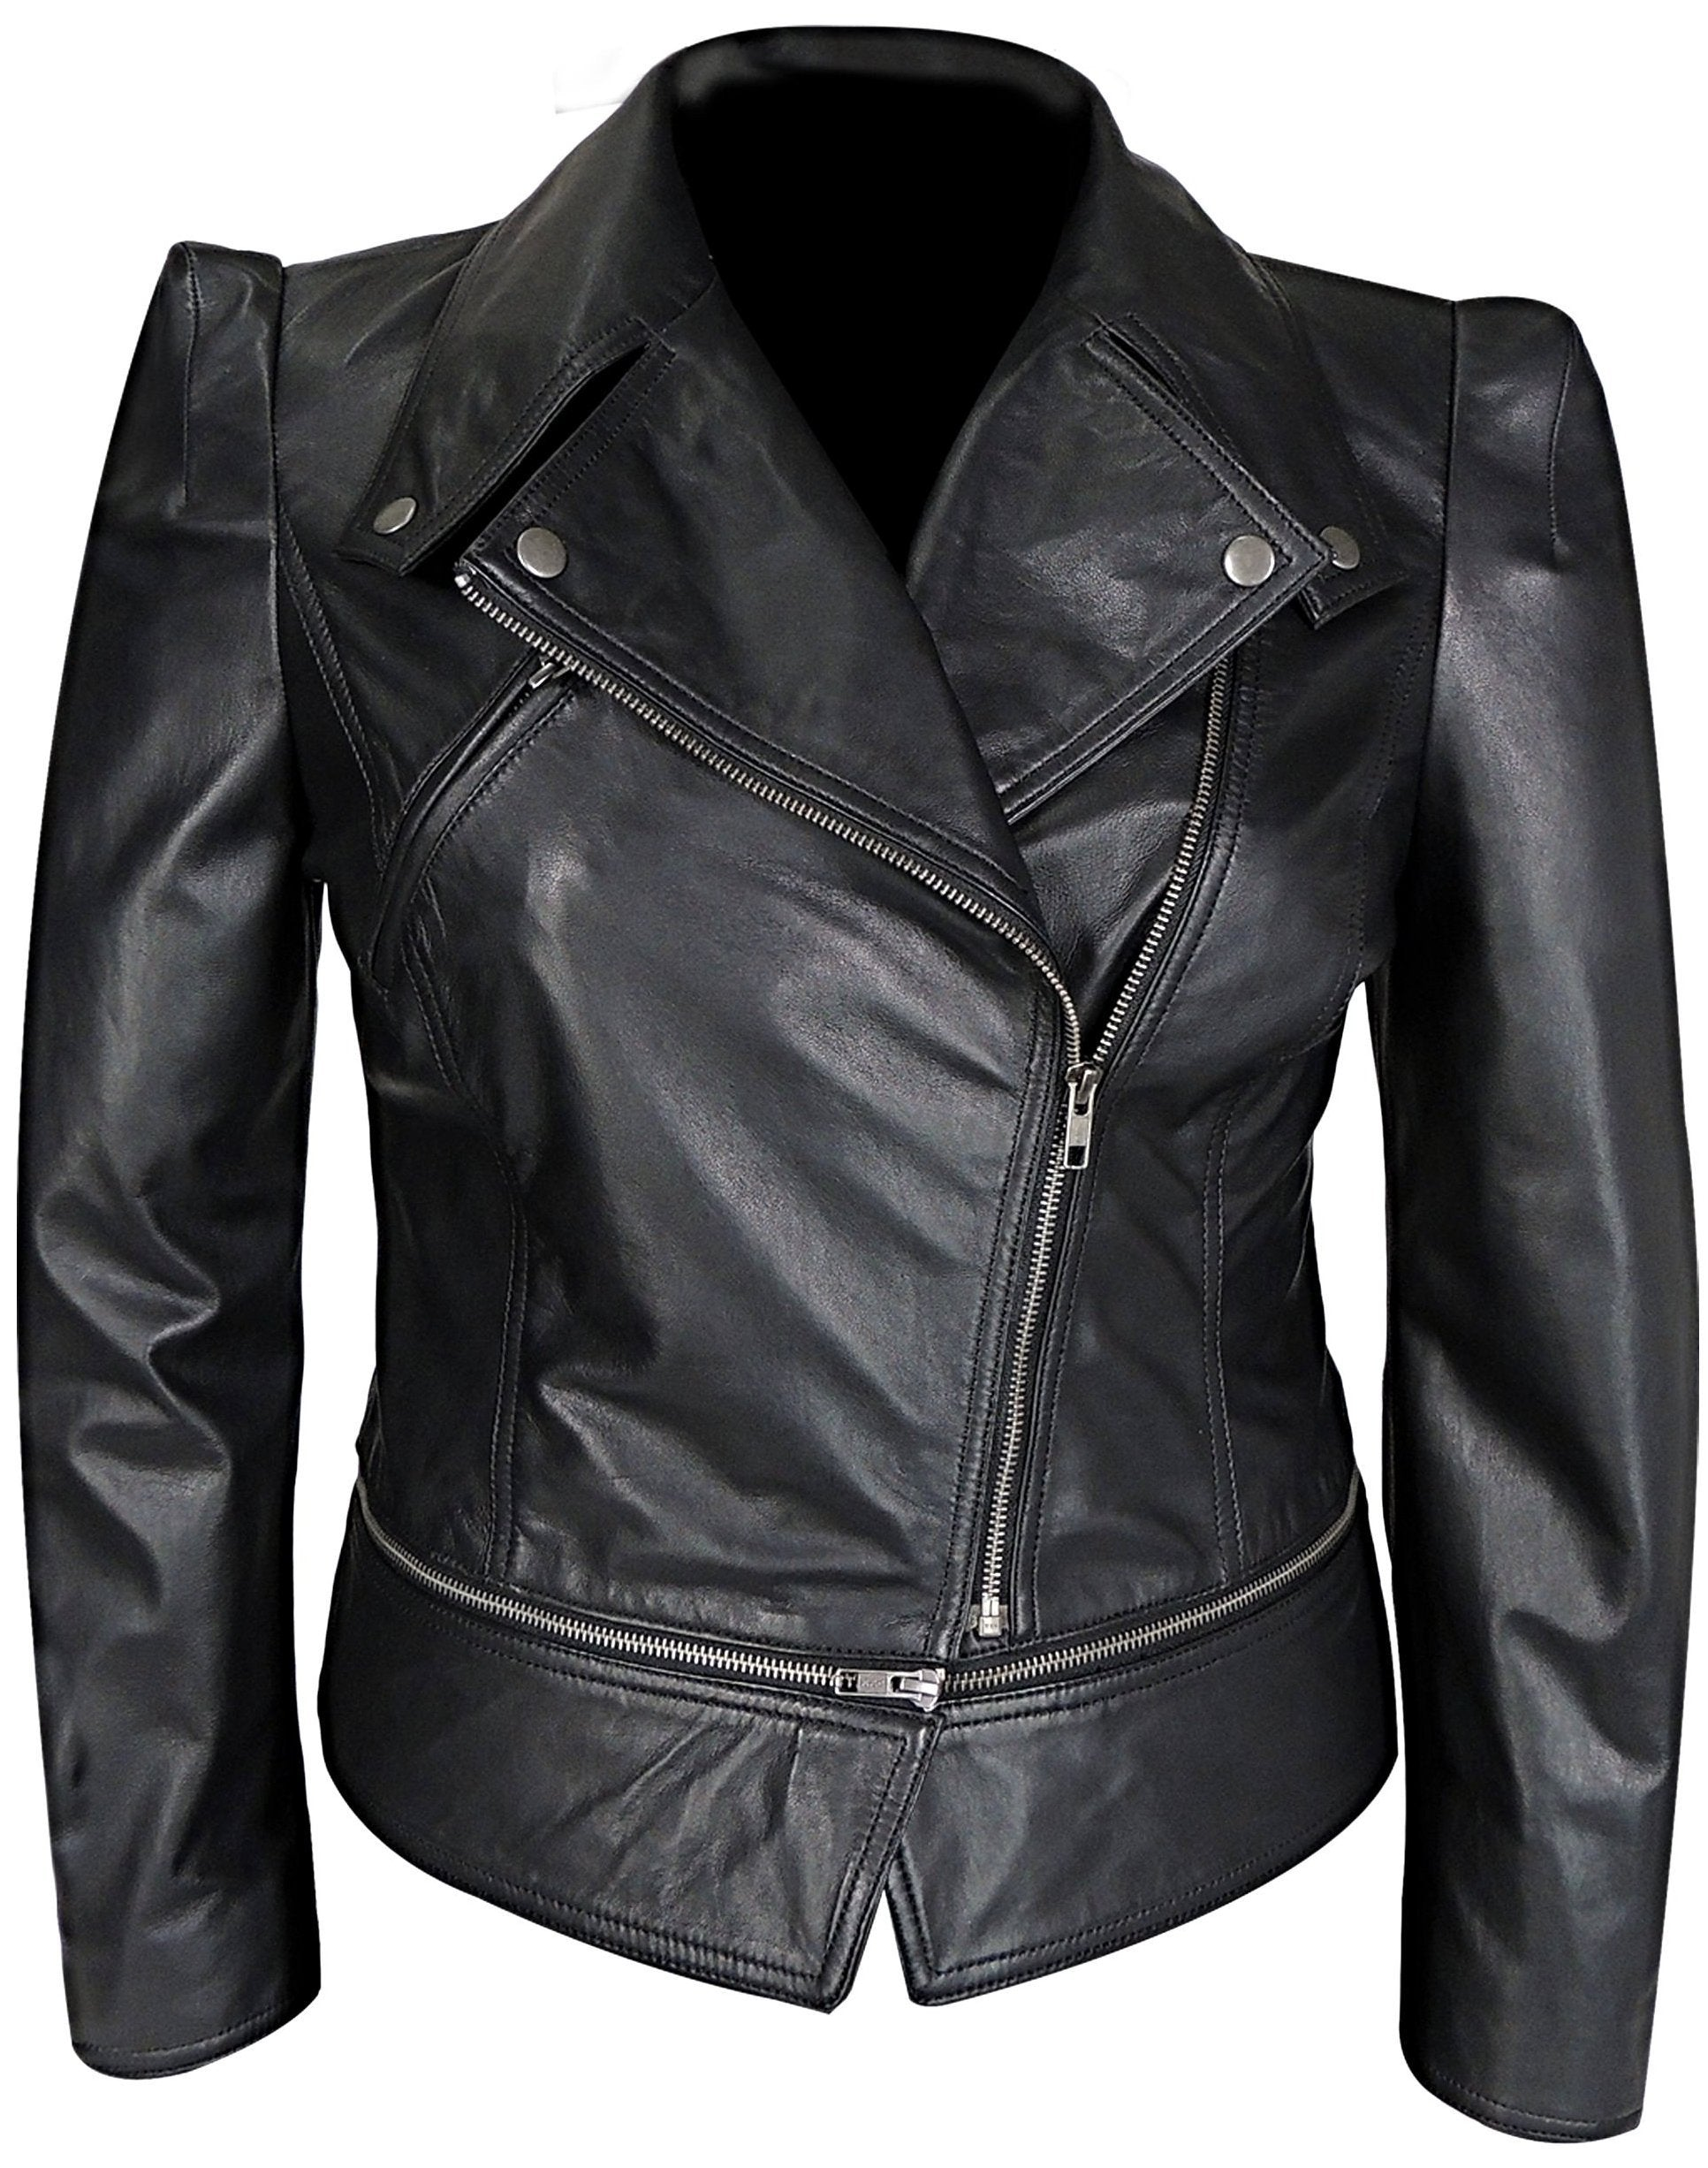 Womens Leather Jacket - Annette Womens Leather Jacket - Discounted!